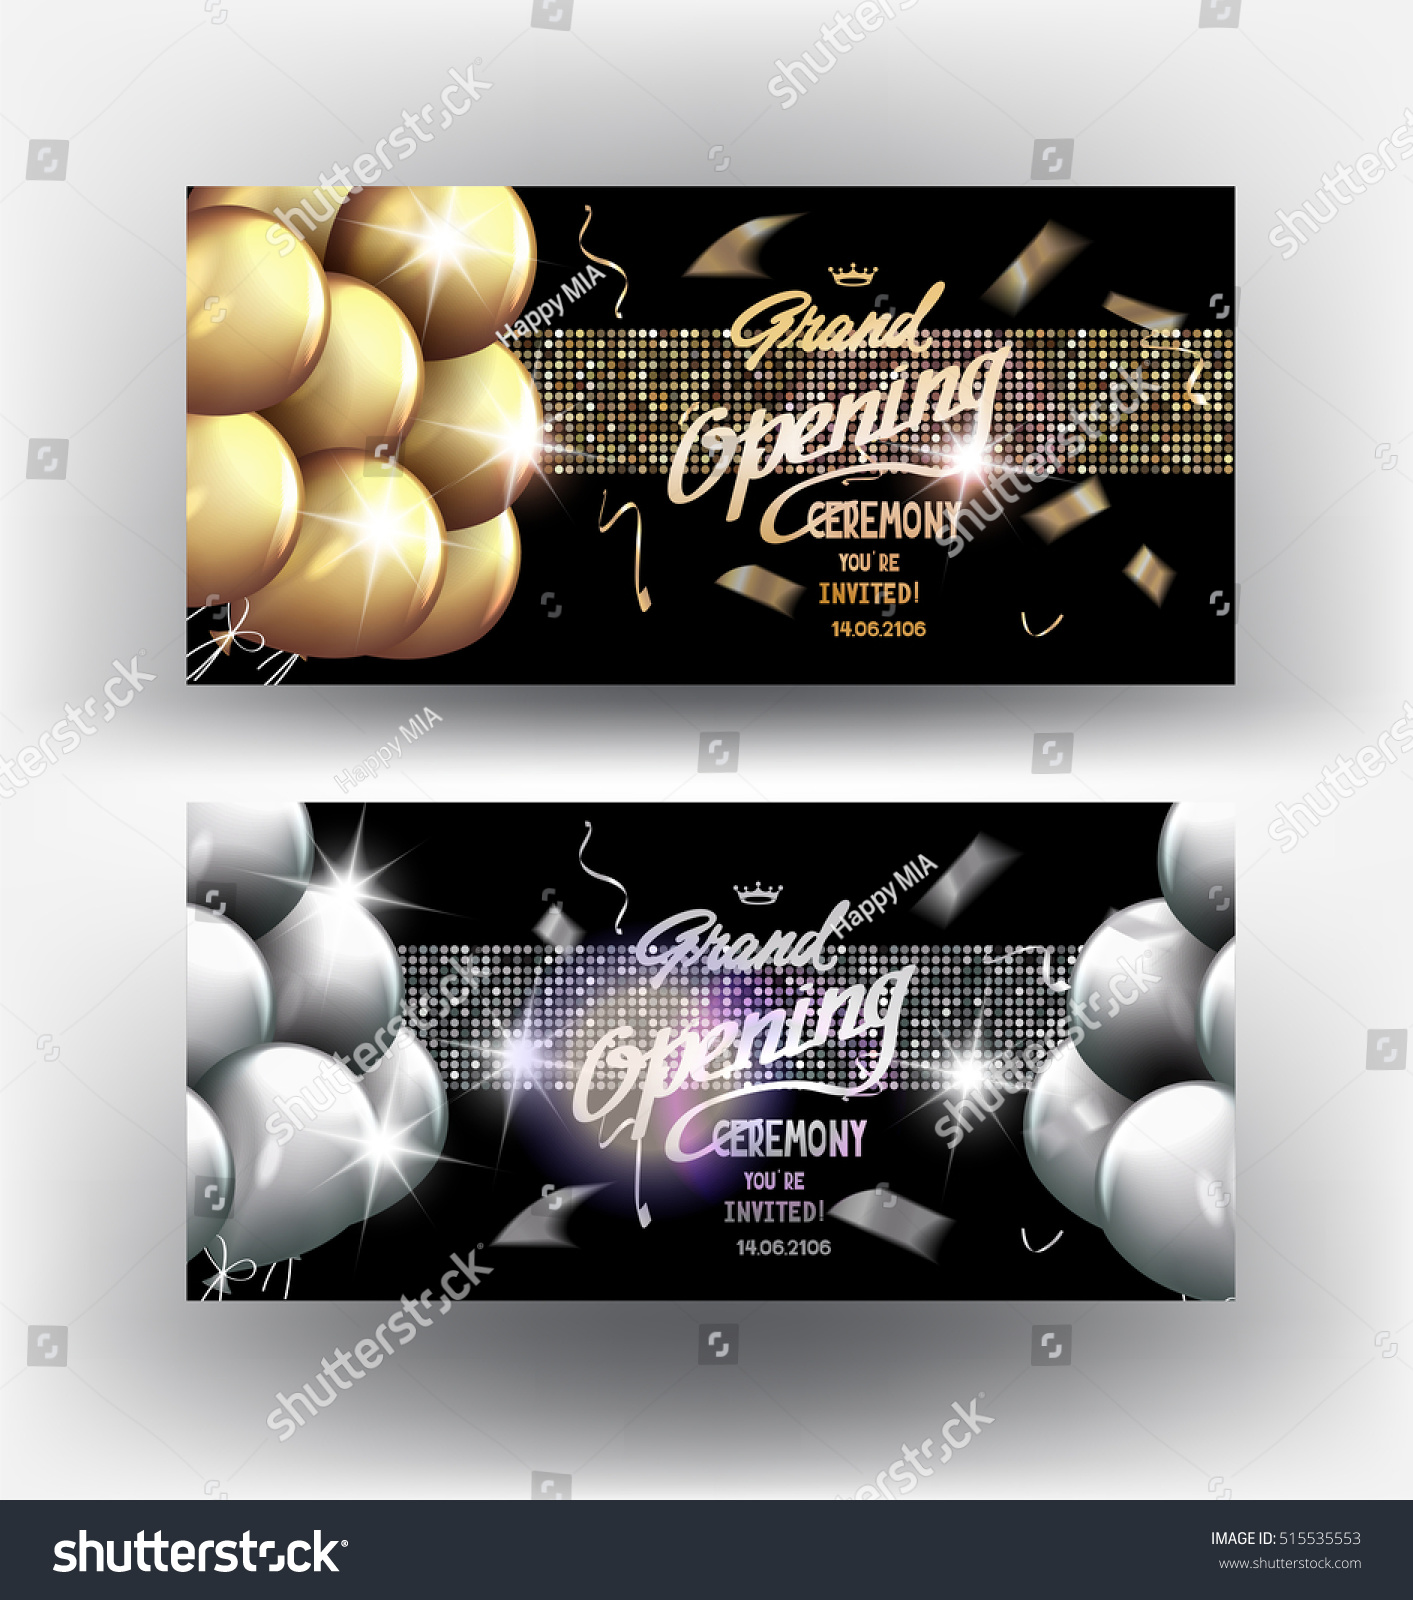 Grand opening gold silver elegant banners stock vector 515535553 grand opening gold and silver elegant banners with sparkling ribbons air balloons and confetti biocorpaavc Choice Image